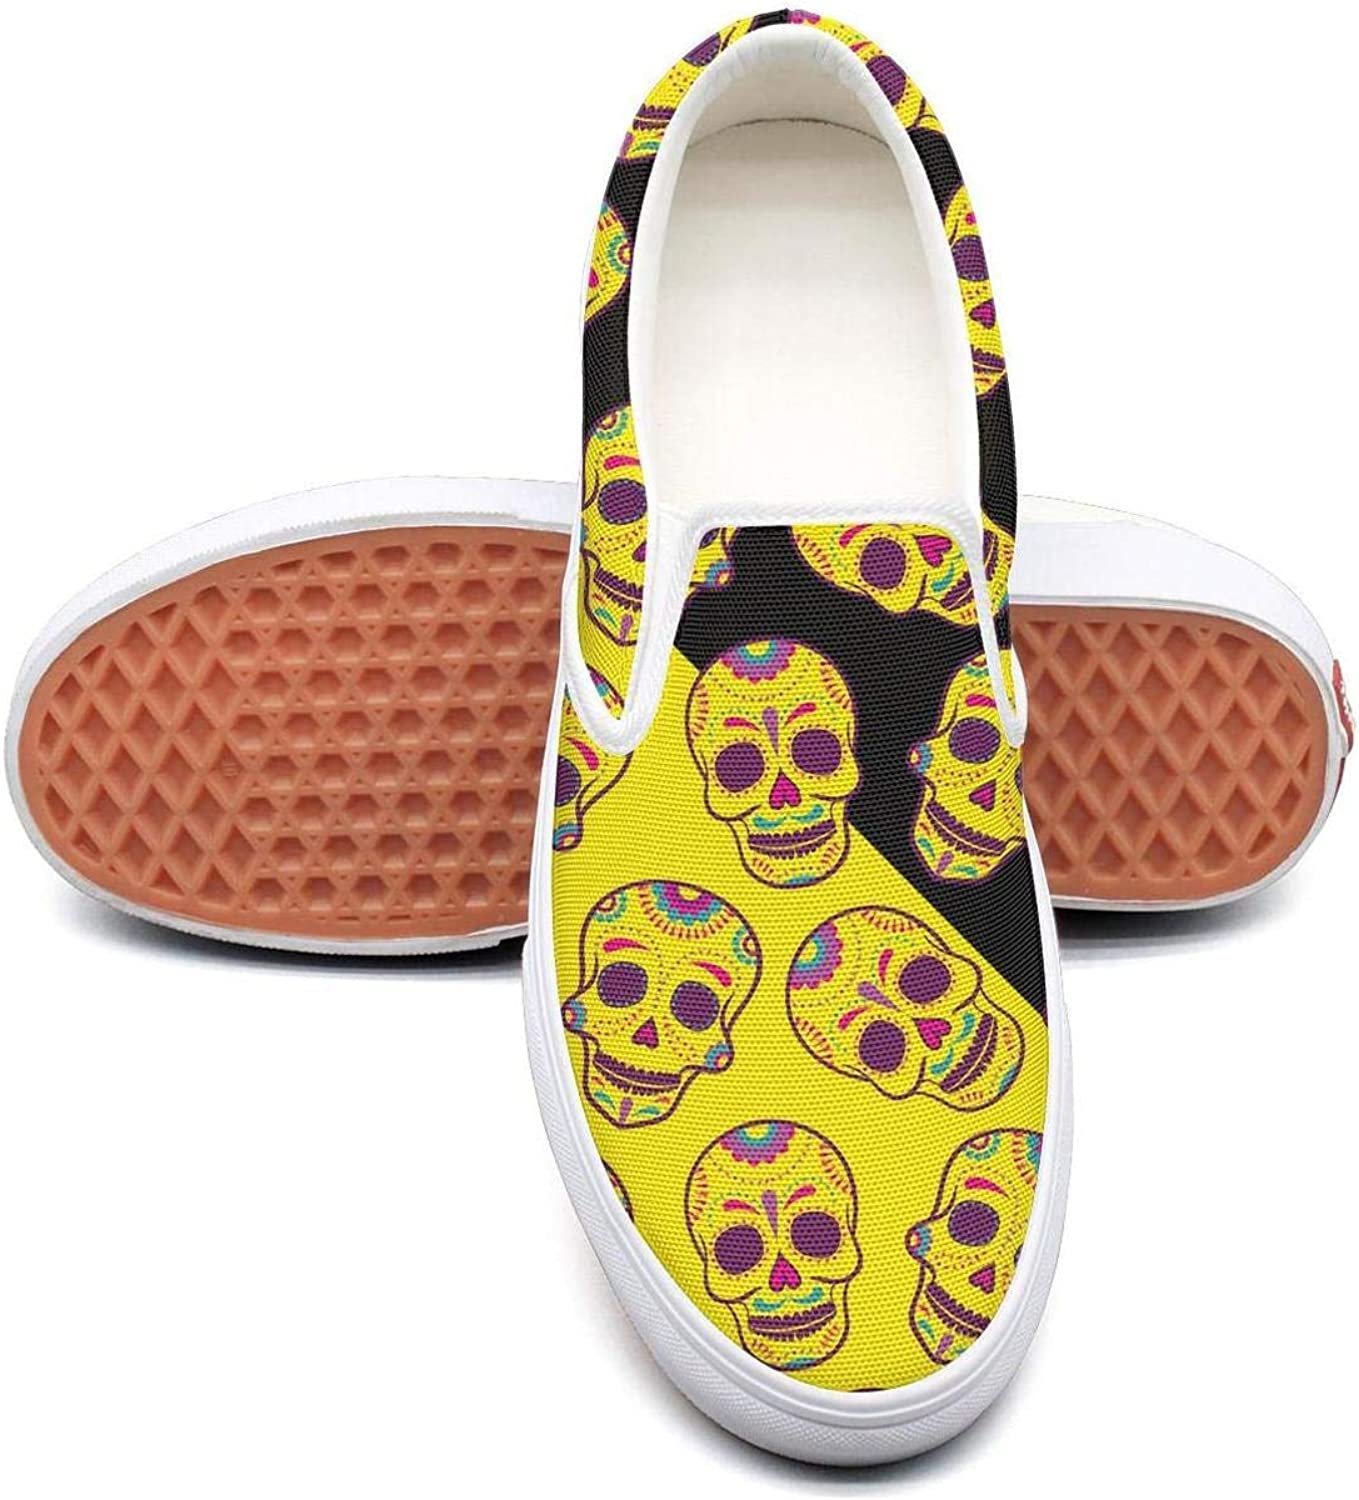 Back to School Dead Candy Skulls Slip On Superior Comfort Loafers Canvas shoes for Women Comfortable